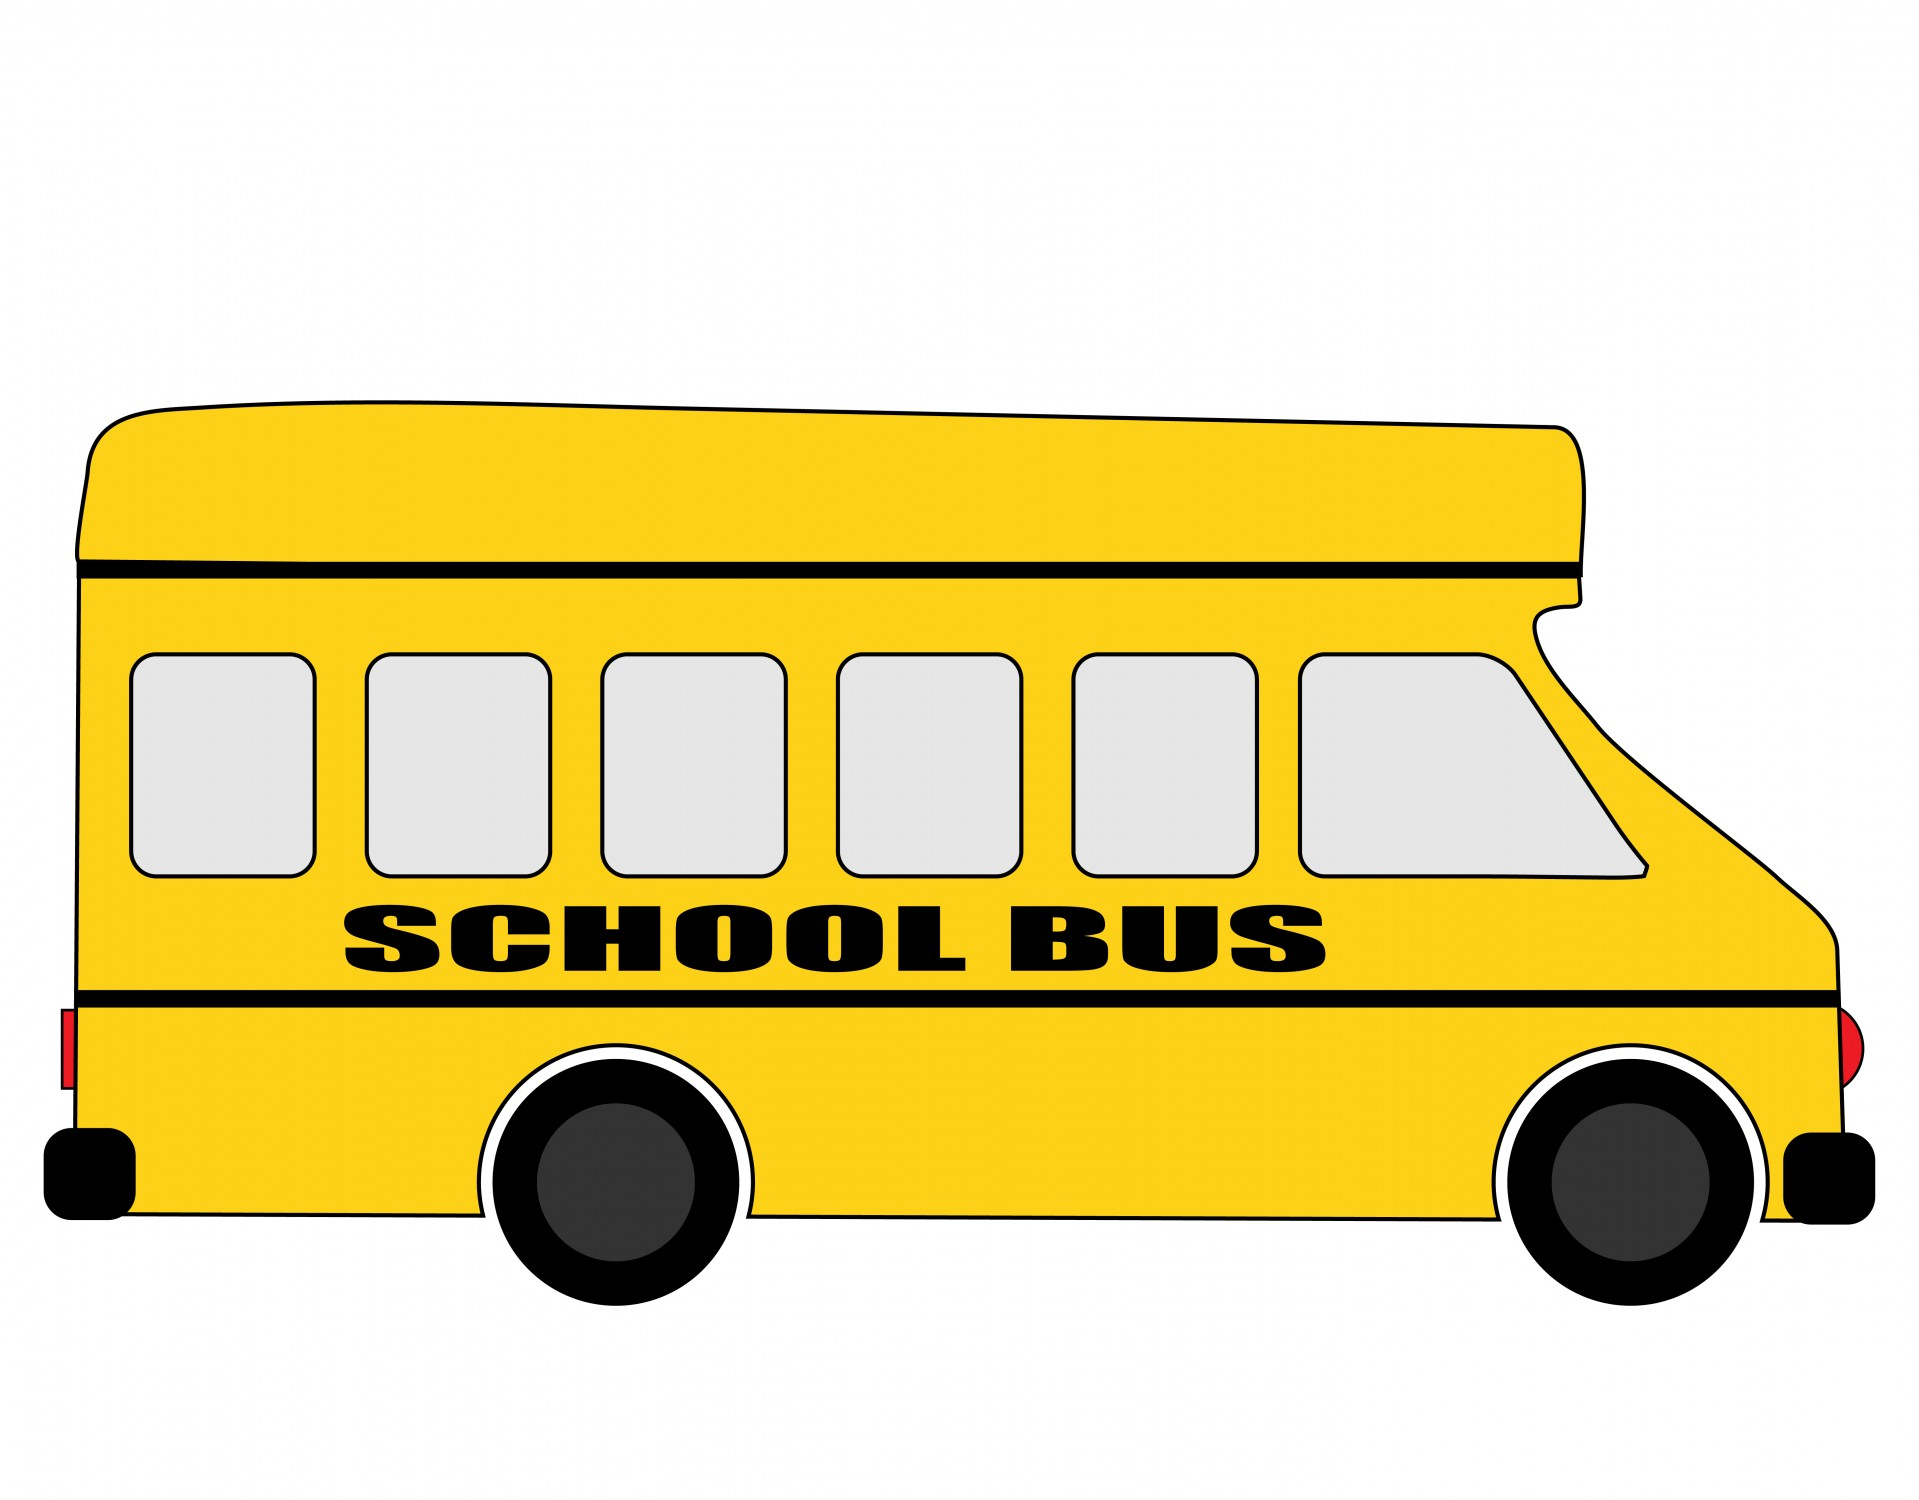 Busbus clipart jpg royalty free library School bus,bus,transport,yellow,clipart - free photo from needpix.com jpg royalty free library